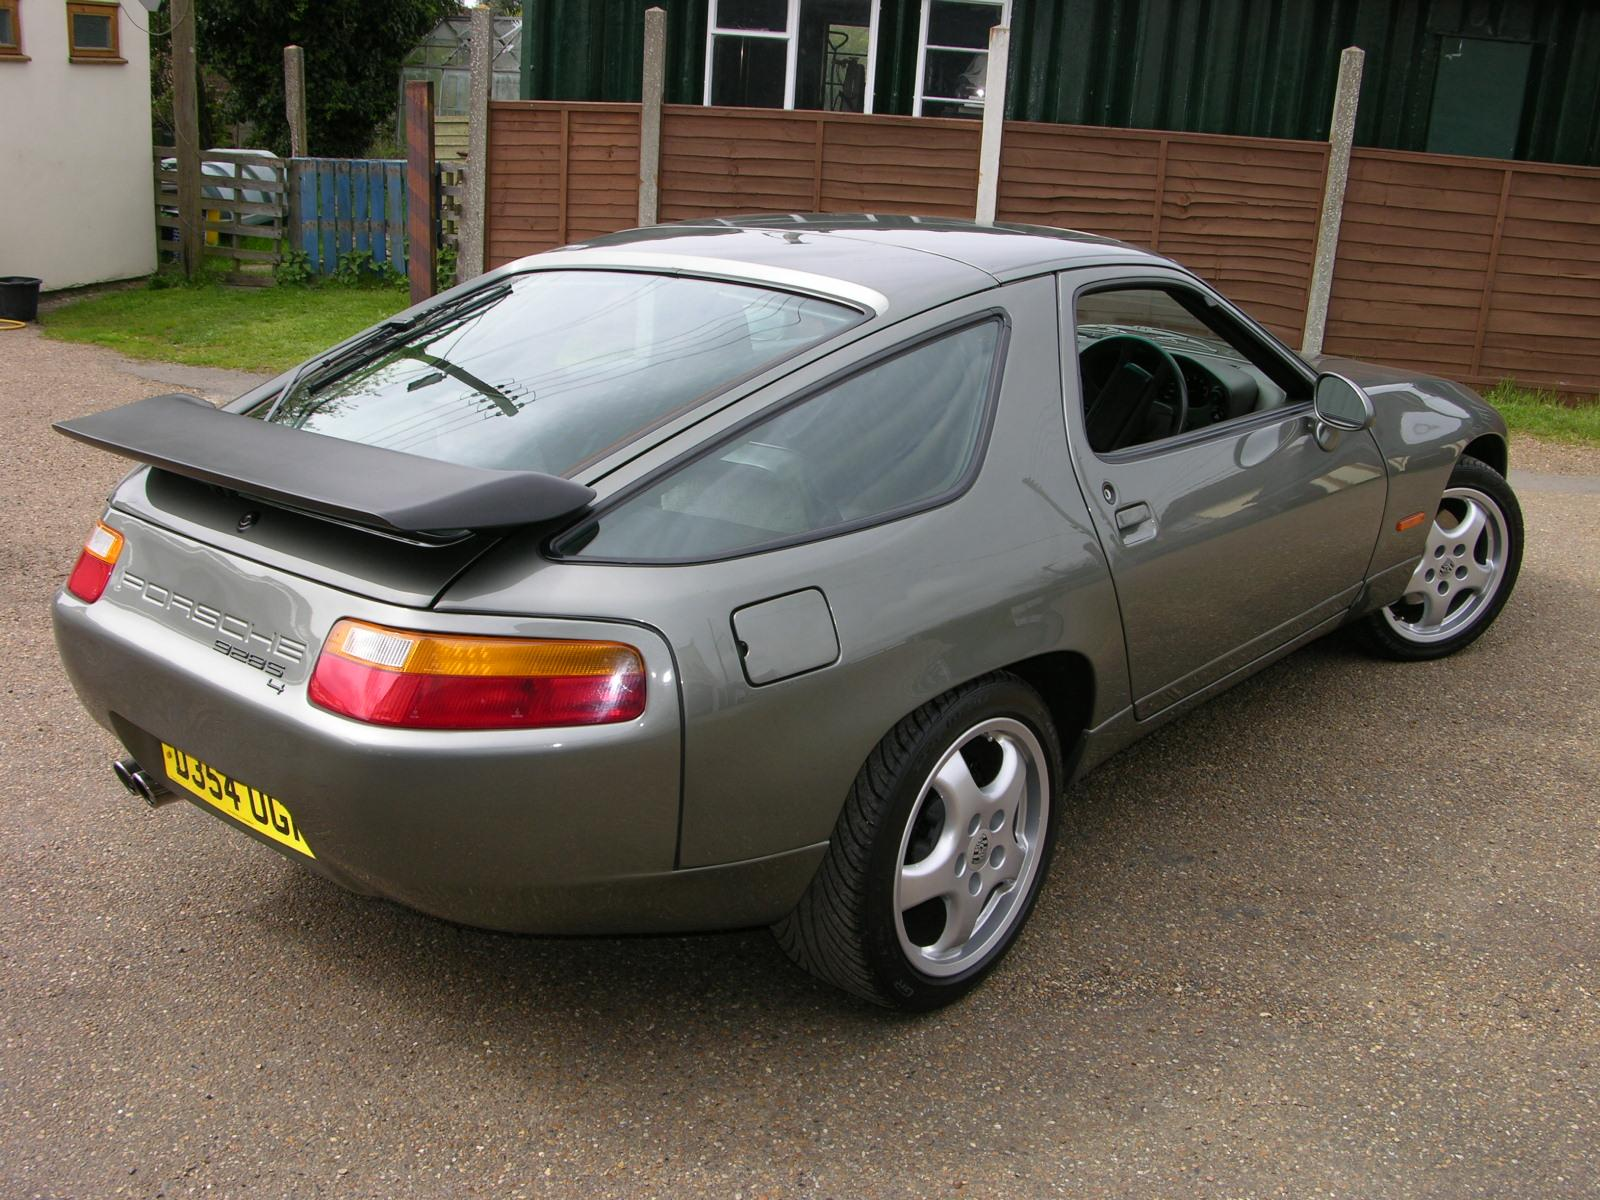 file 1987 porsche 928 s4 flickr the car spy 22 jpg wikimedia commons. Black Bedroom Furniture Sets. Home Design Ideas